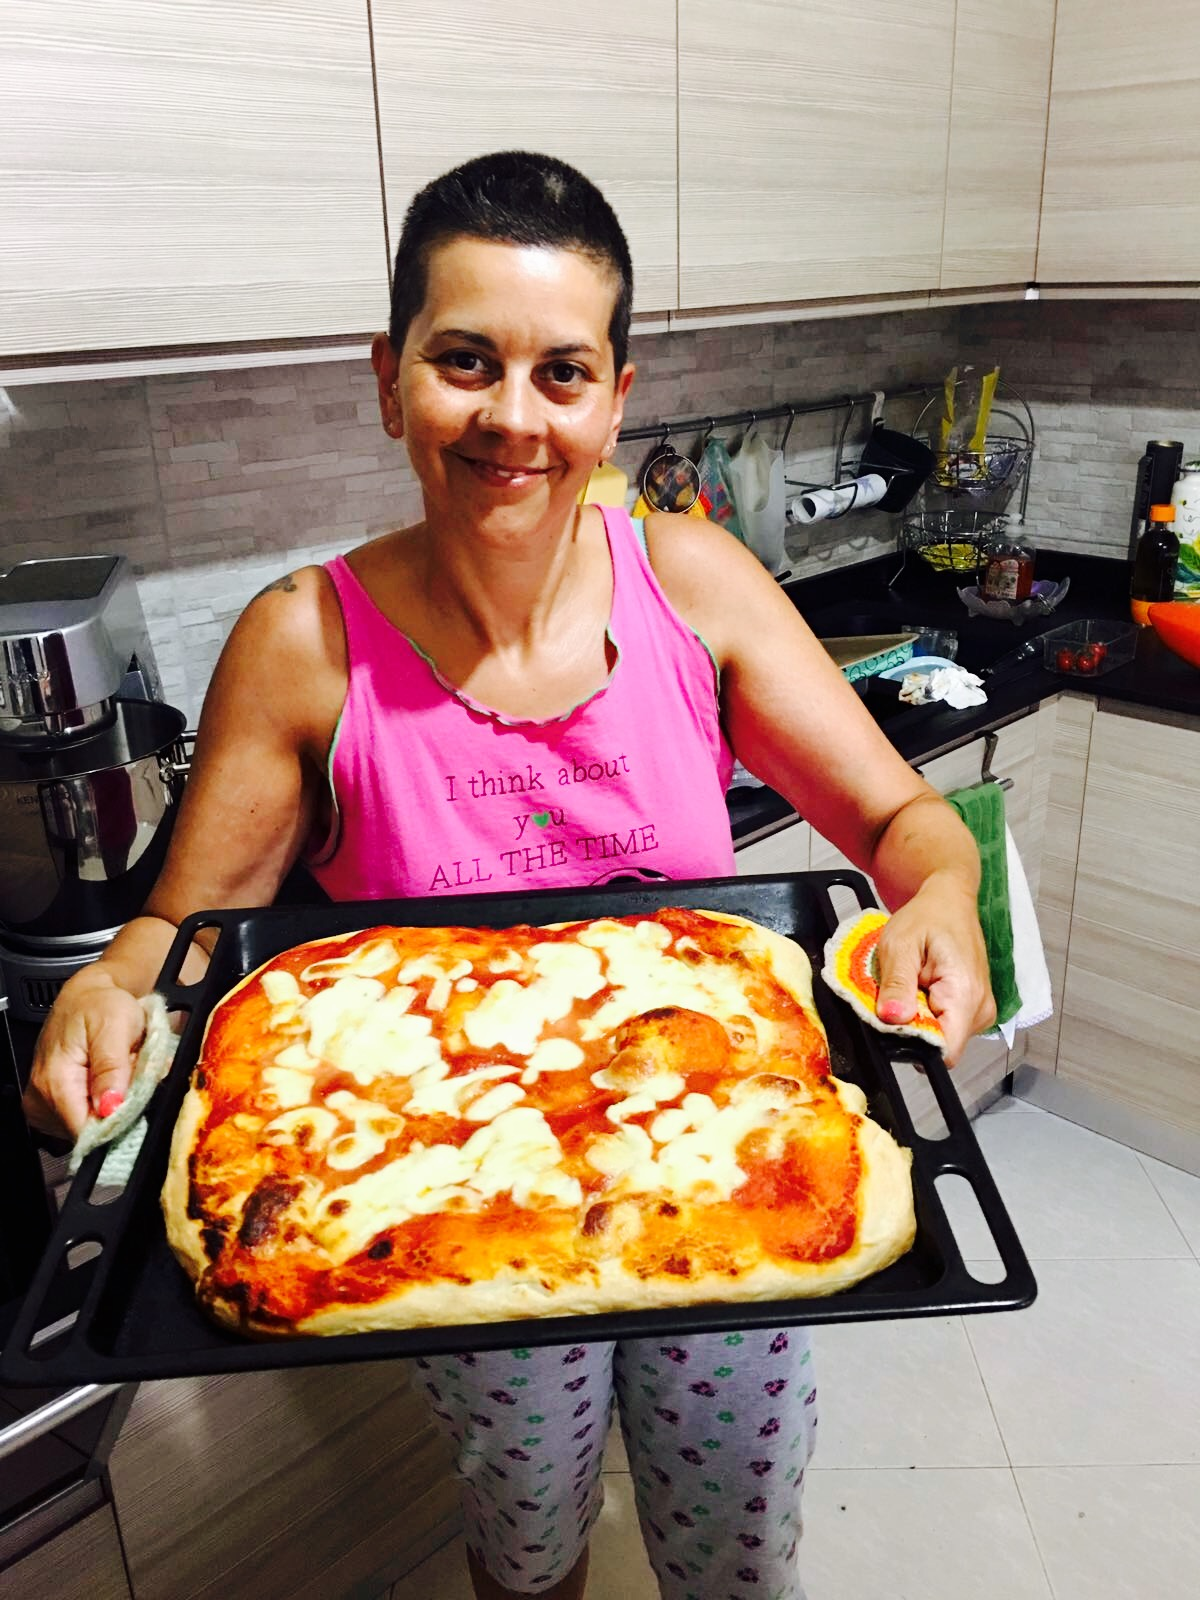 PIZZA HOME MADE